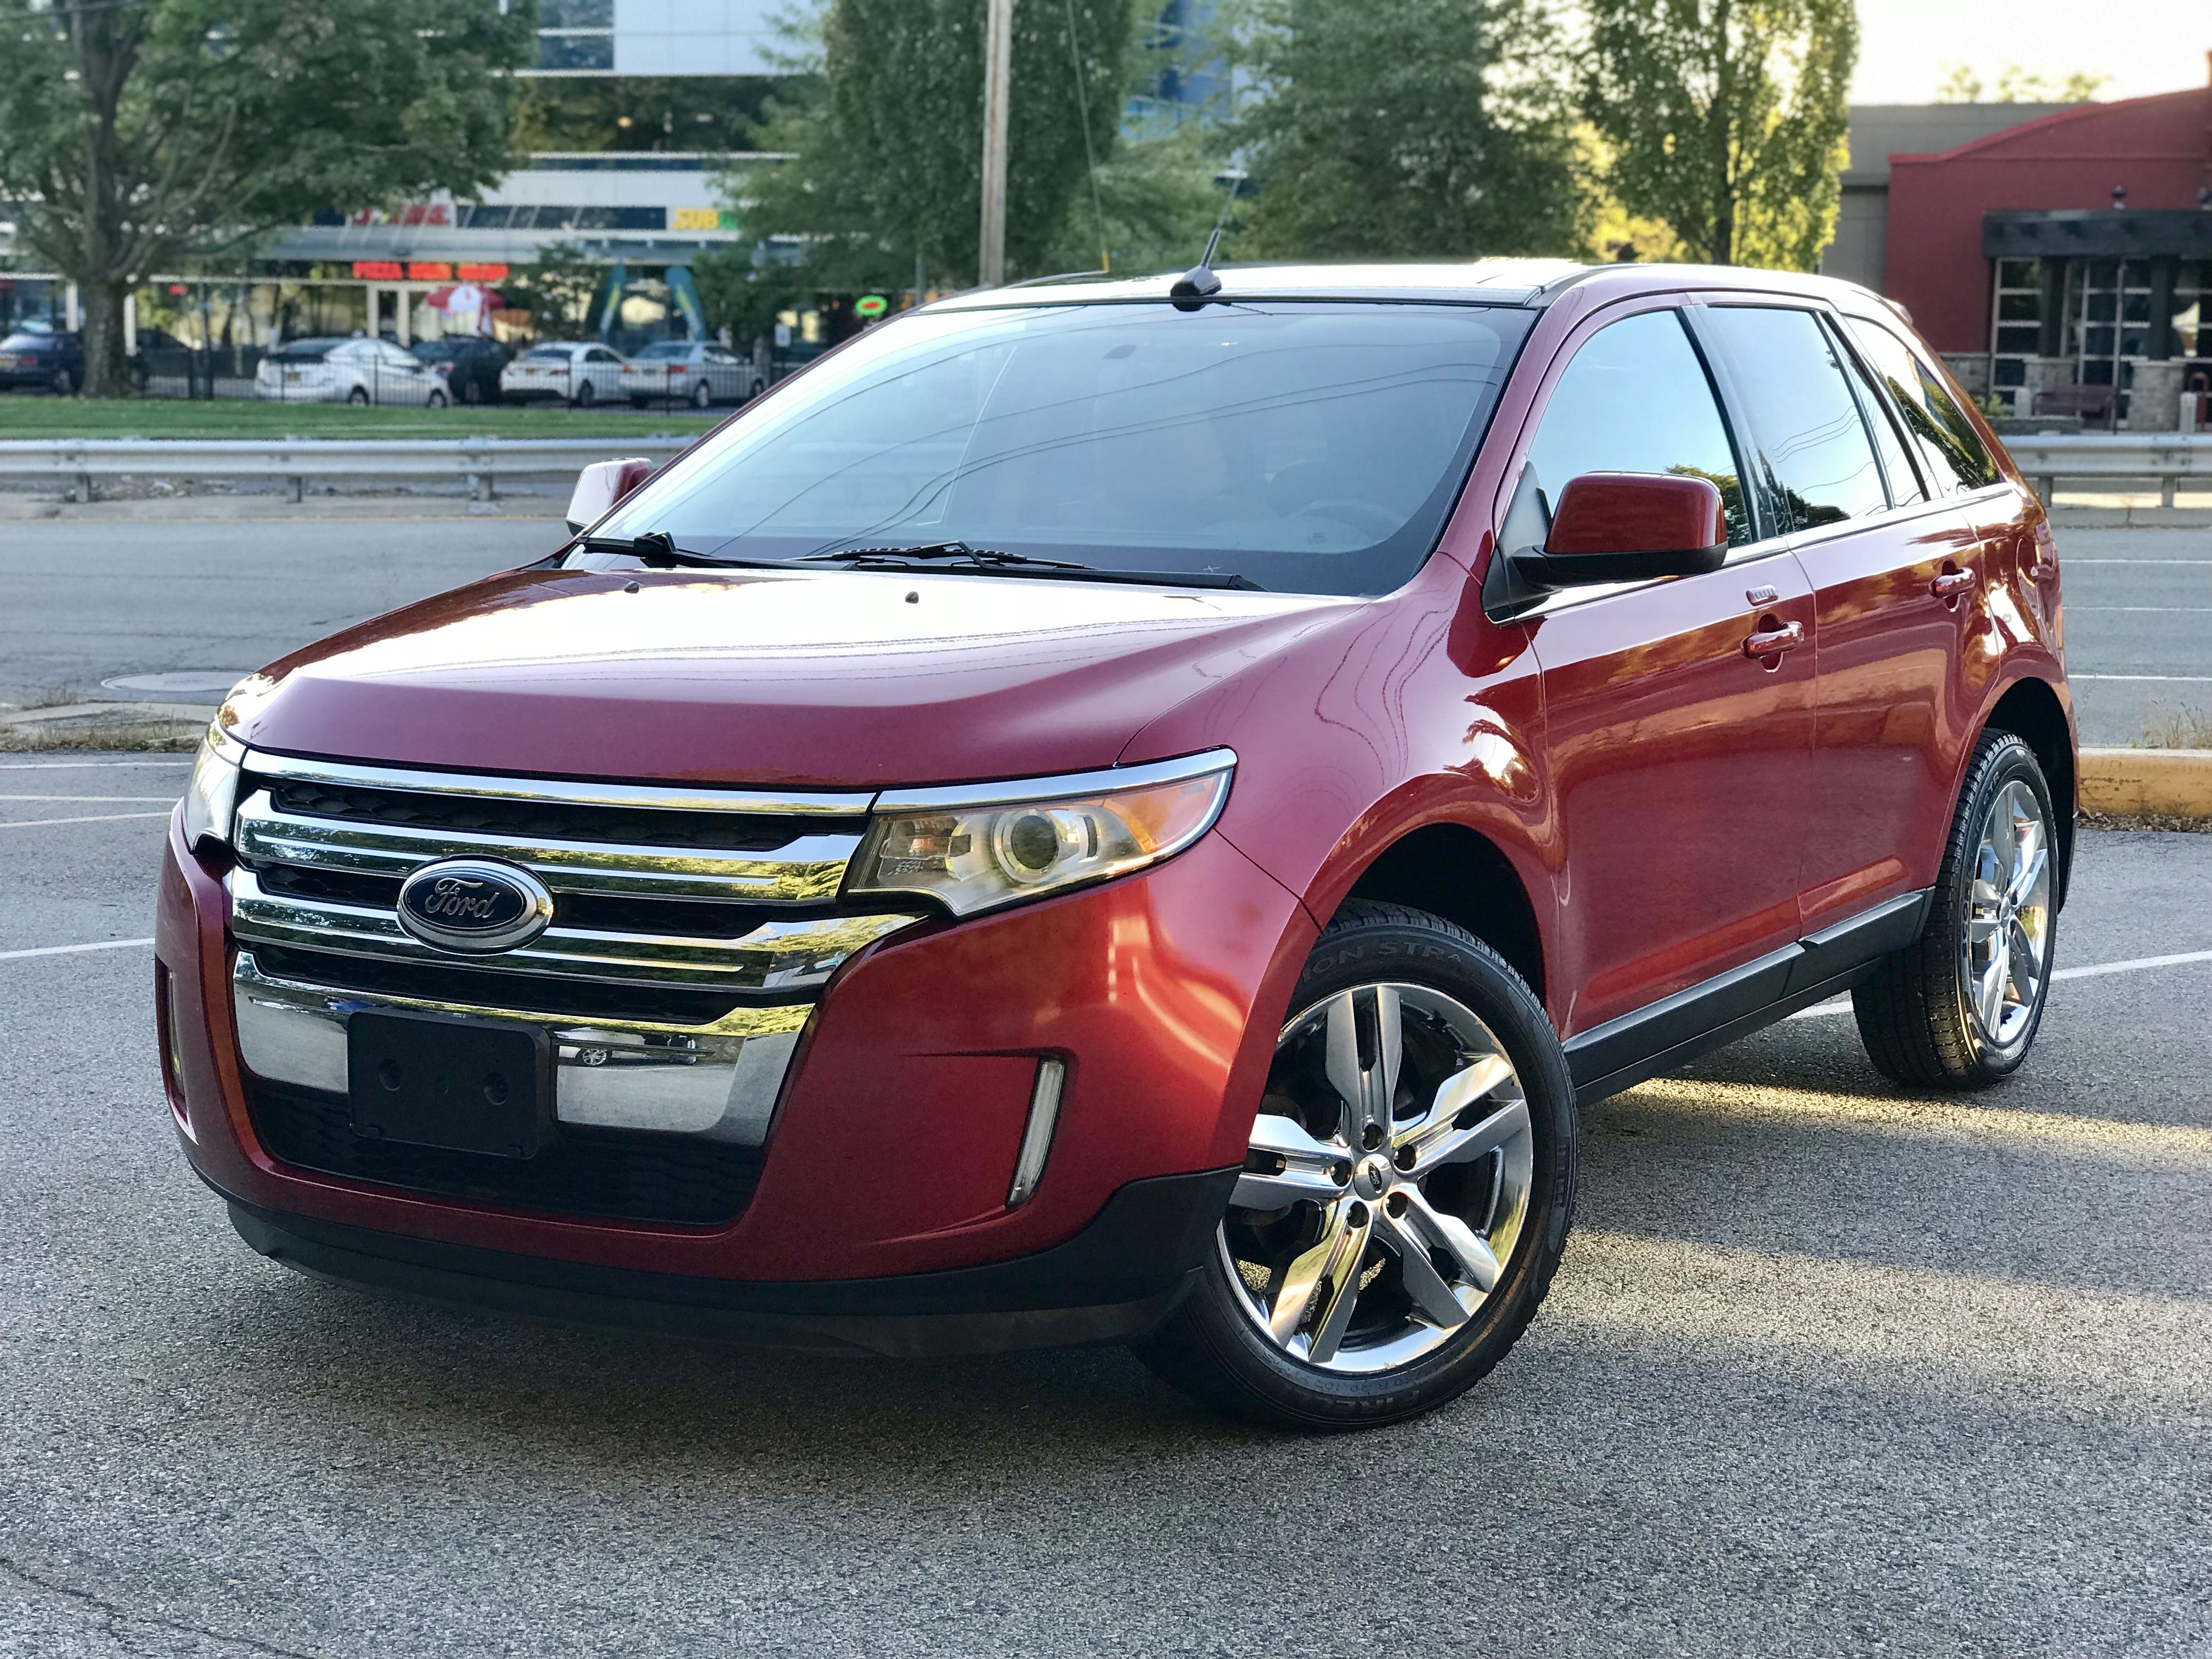 Take a look at this low mileage beautiful Ford Edge Limited AWD